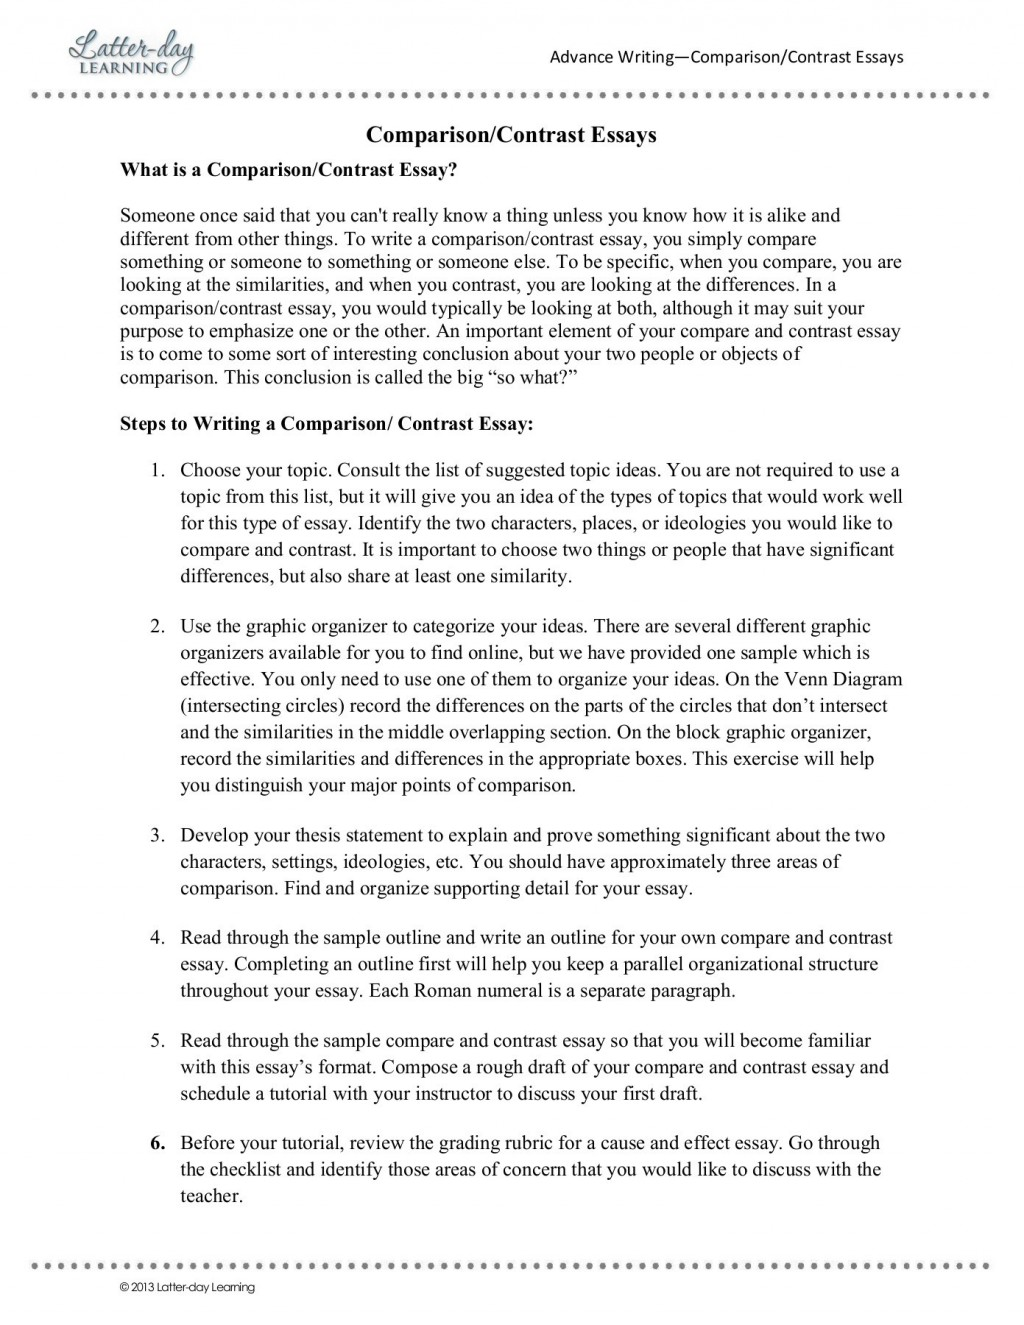 022 Essay Example How To Outline Compare And Awesome A Contrast Create An For Large